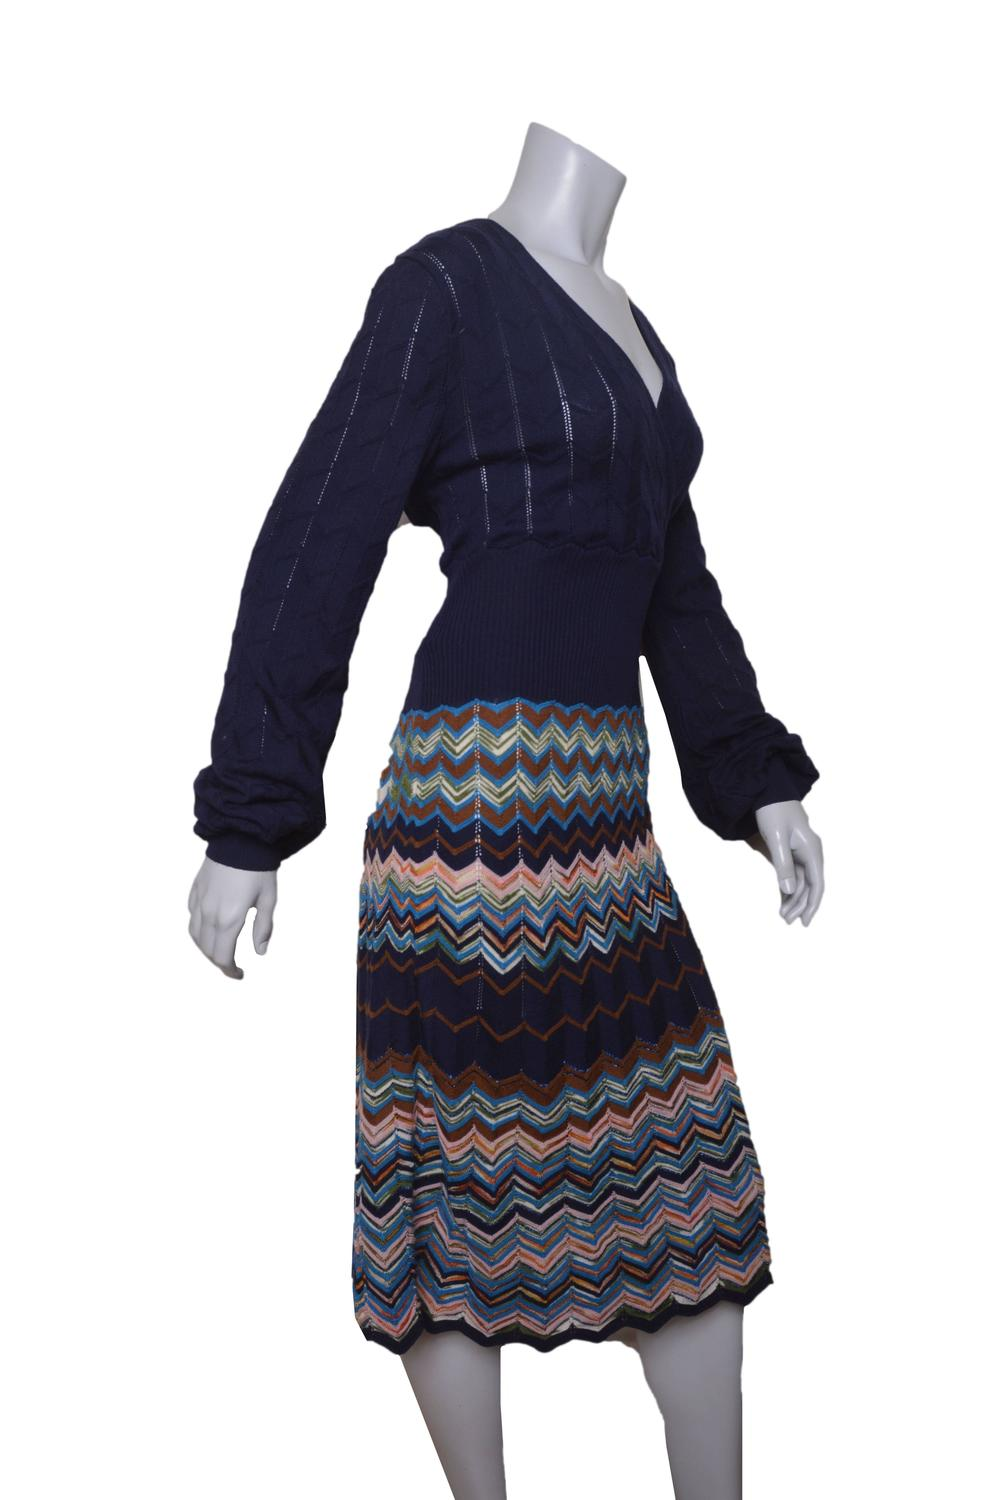 M Missoni Navy Blue Chevron Wrap Dress For Sale at 1stdibs